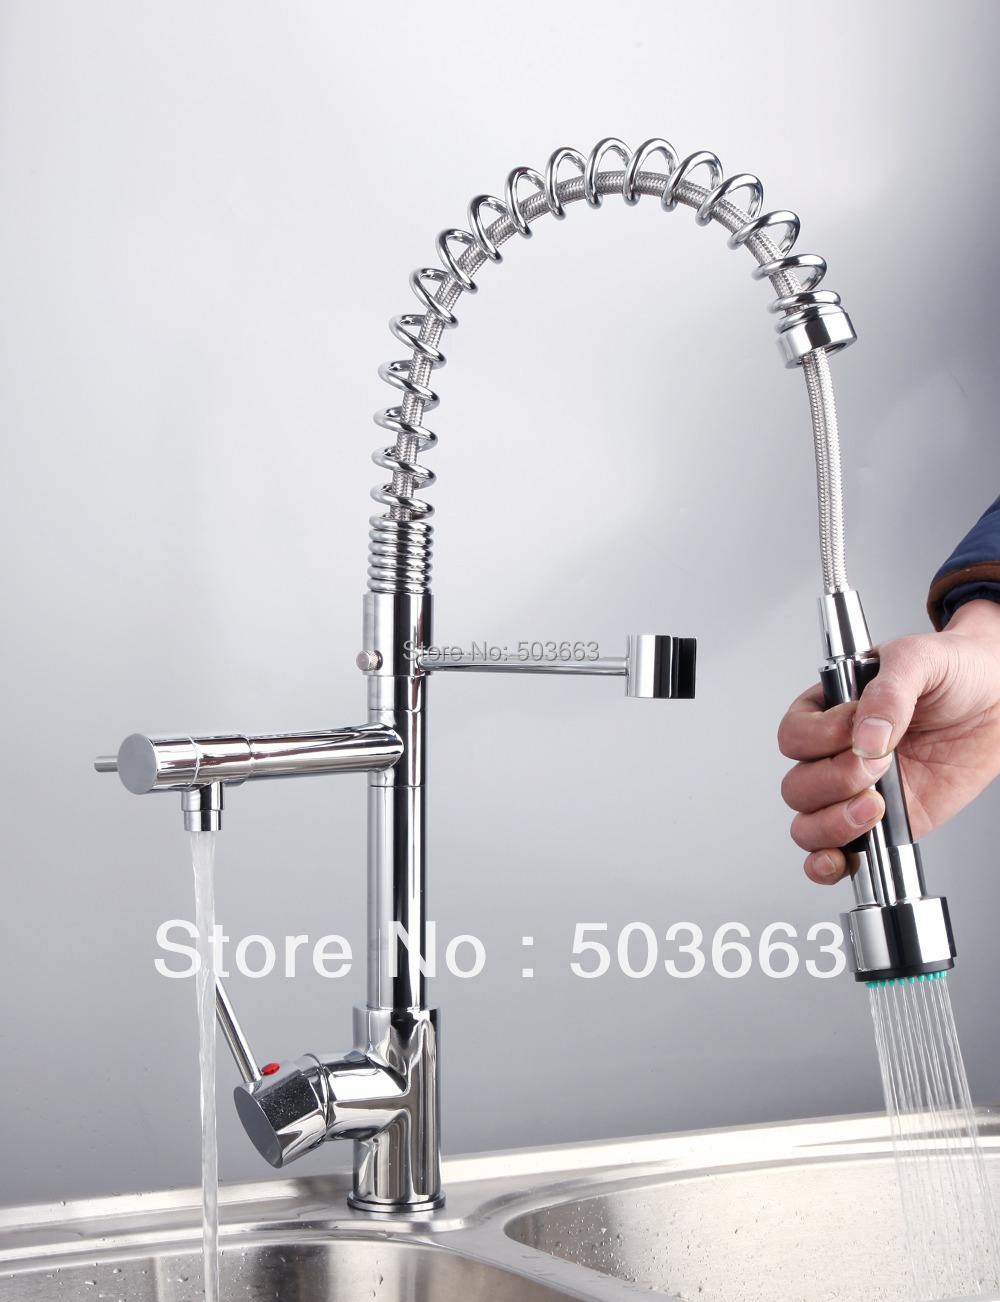 Newly Free Wholesale Retail Chrome Brass Water Kitchen Faucet Swivel Spout Pull Out Vessel Sink Single Handle Mixer Tap MF-266 hot free wholesale retail chrome brass water kitchen faucet swivel spout pull out vessel sink single handle mixer tap mf 264